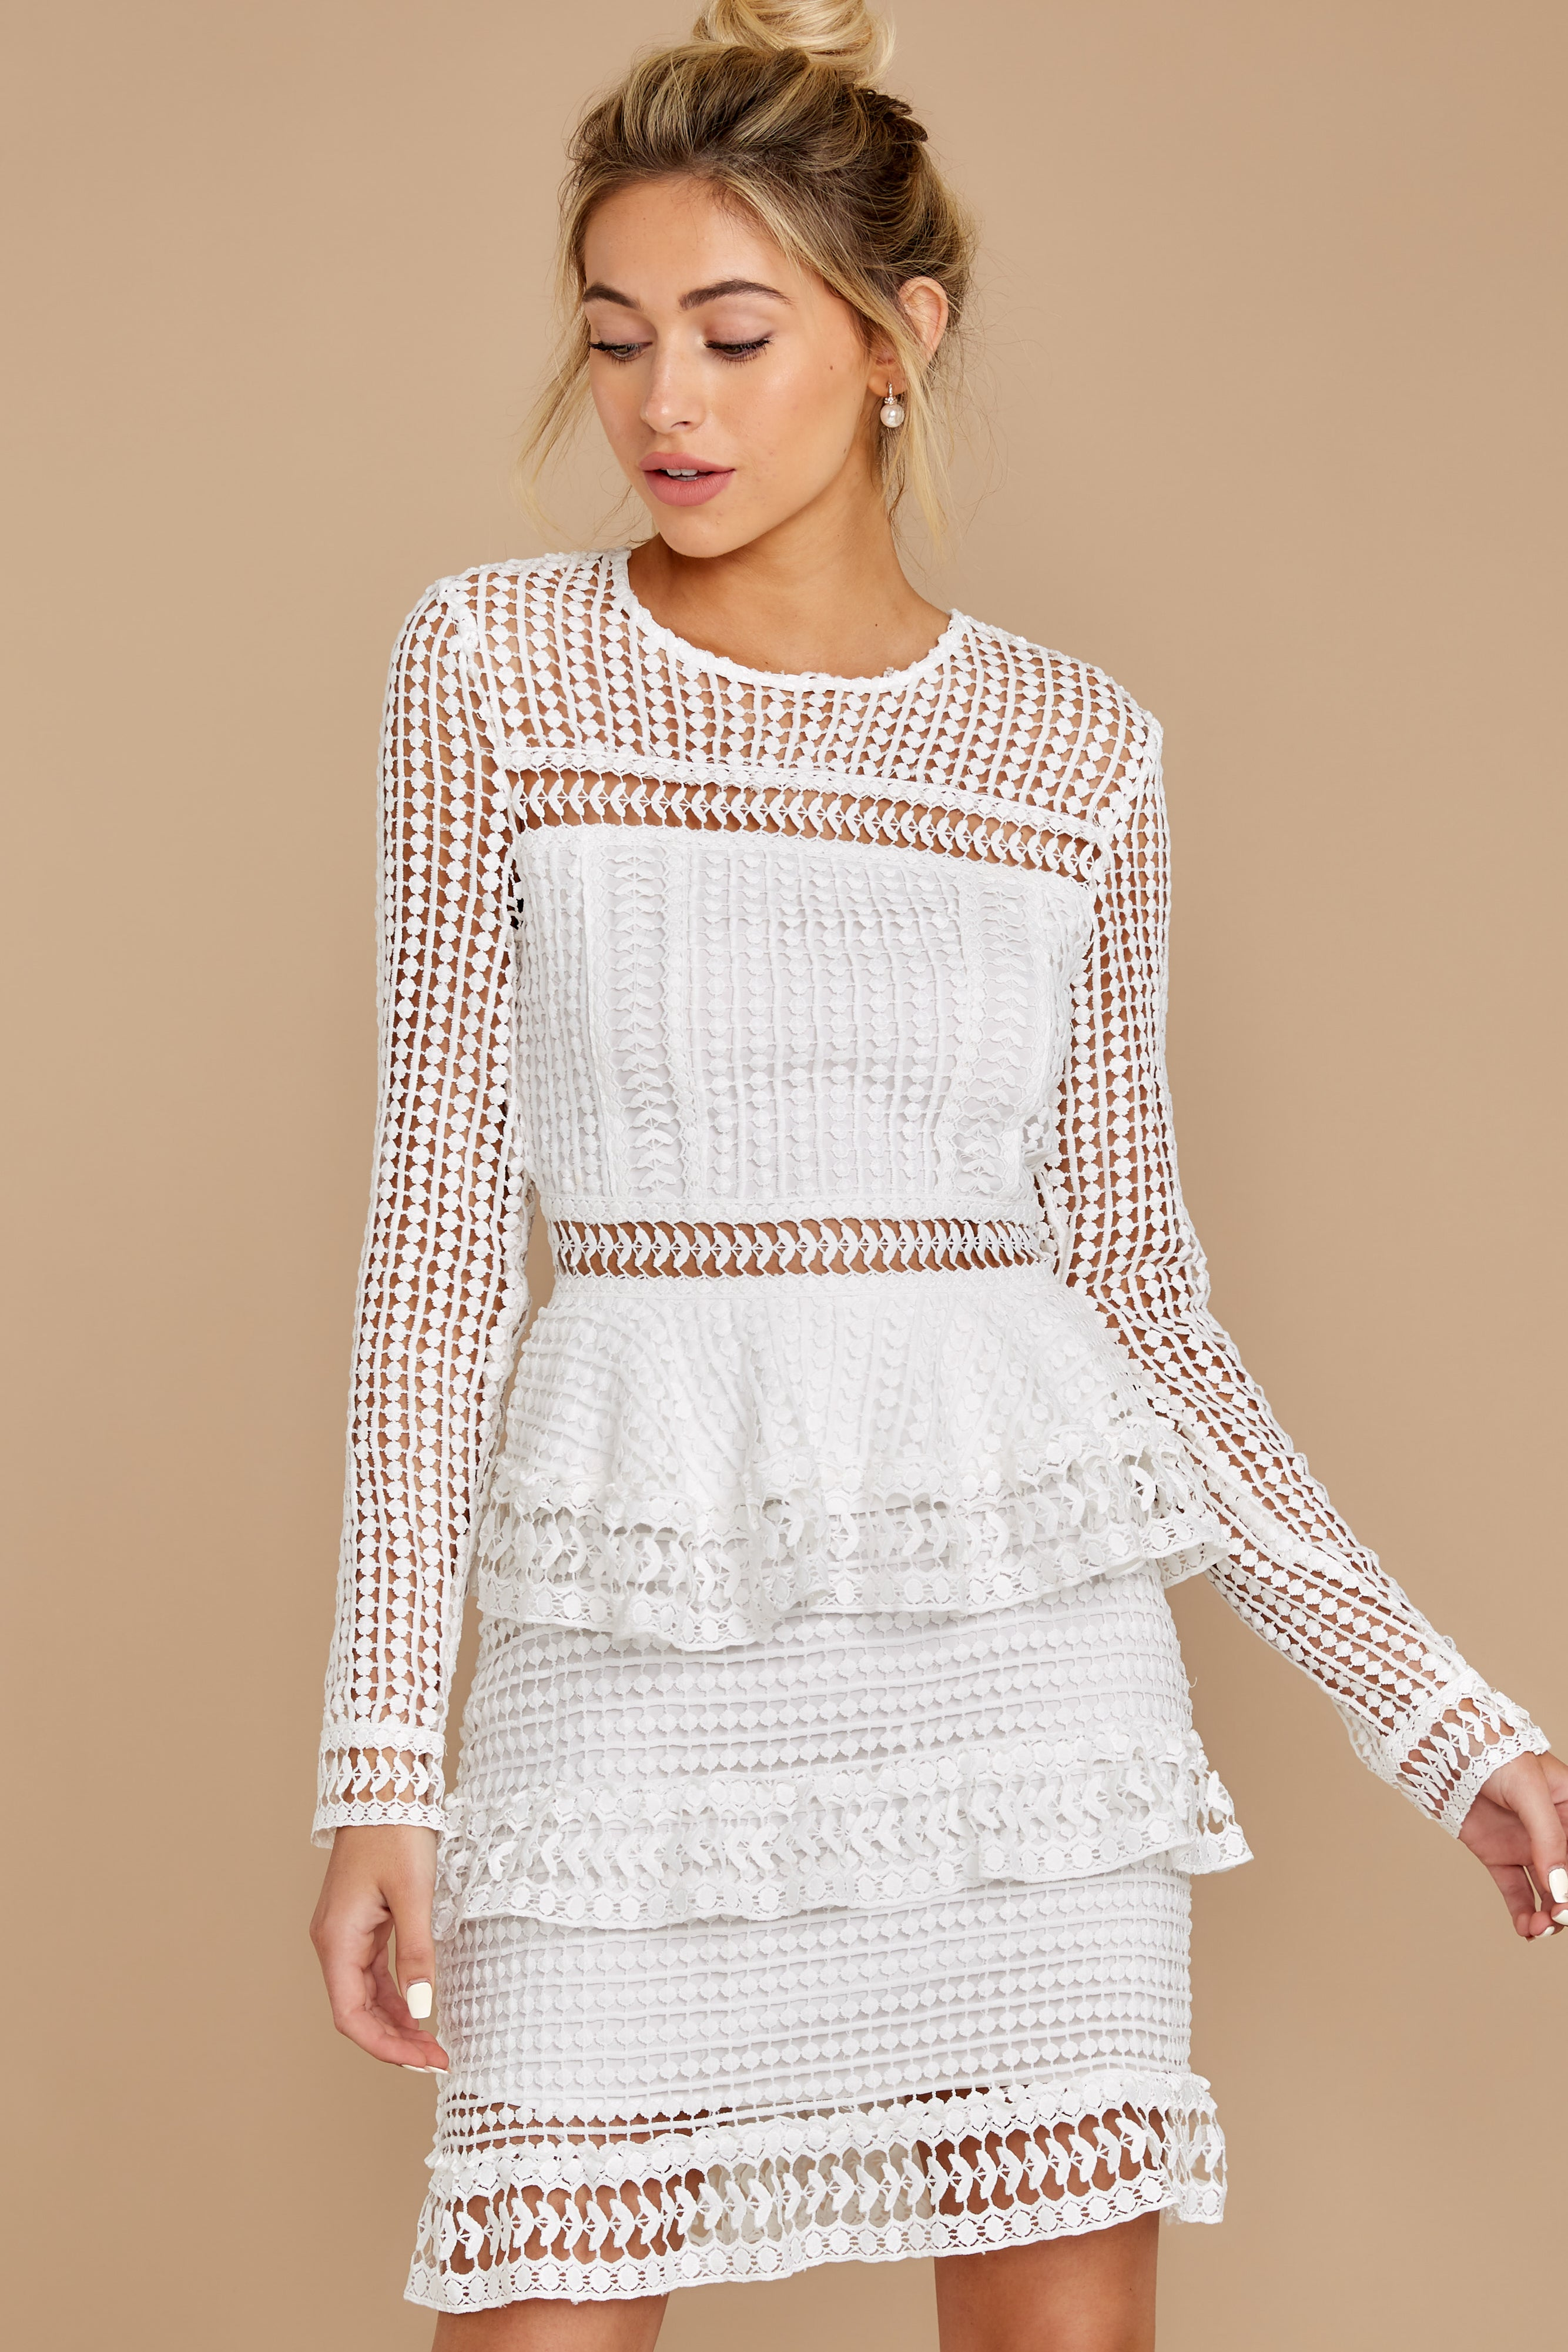 1 Out For Love White Lace Dress at redress.com